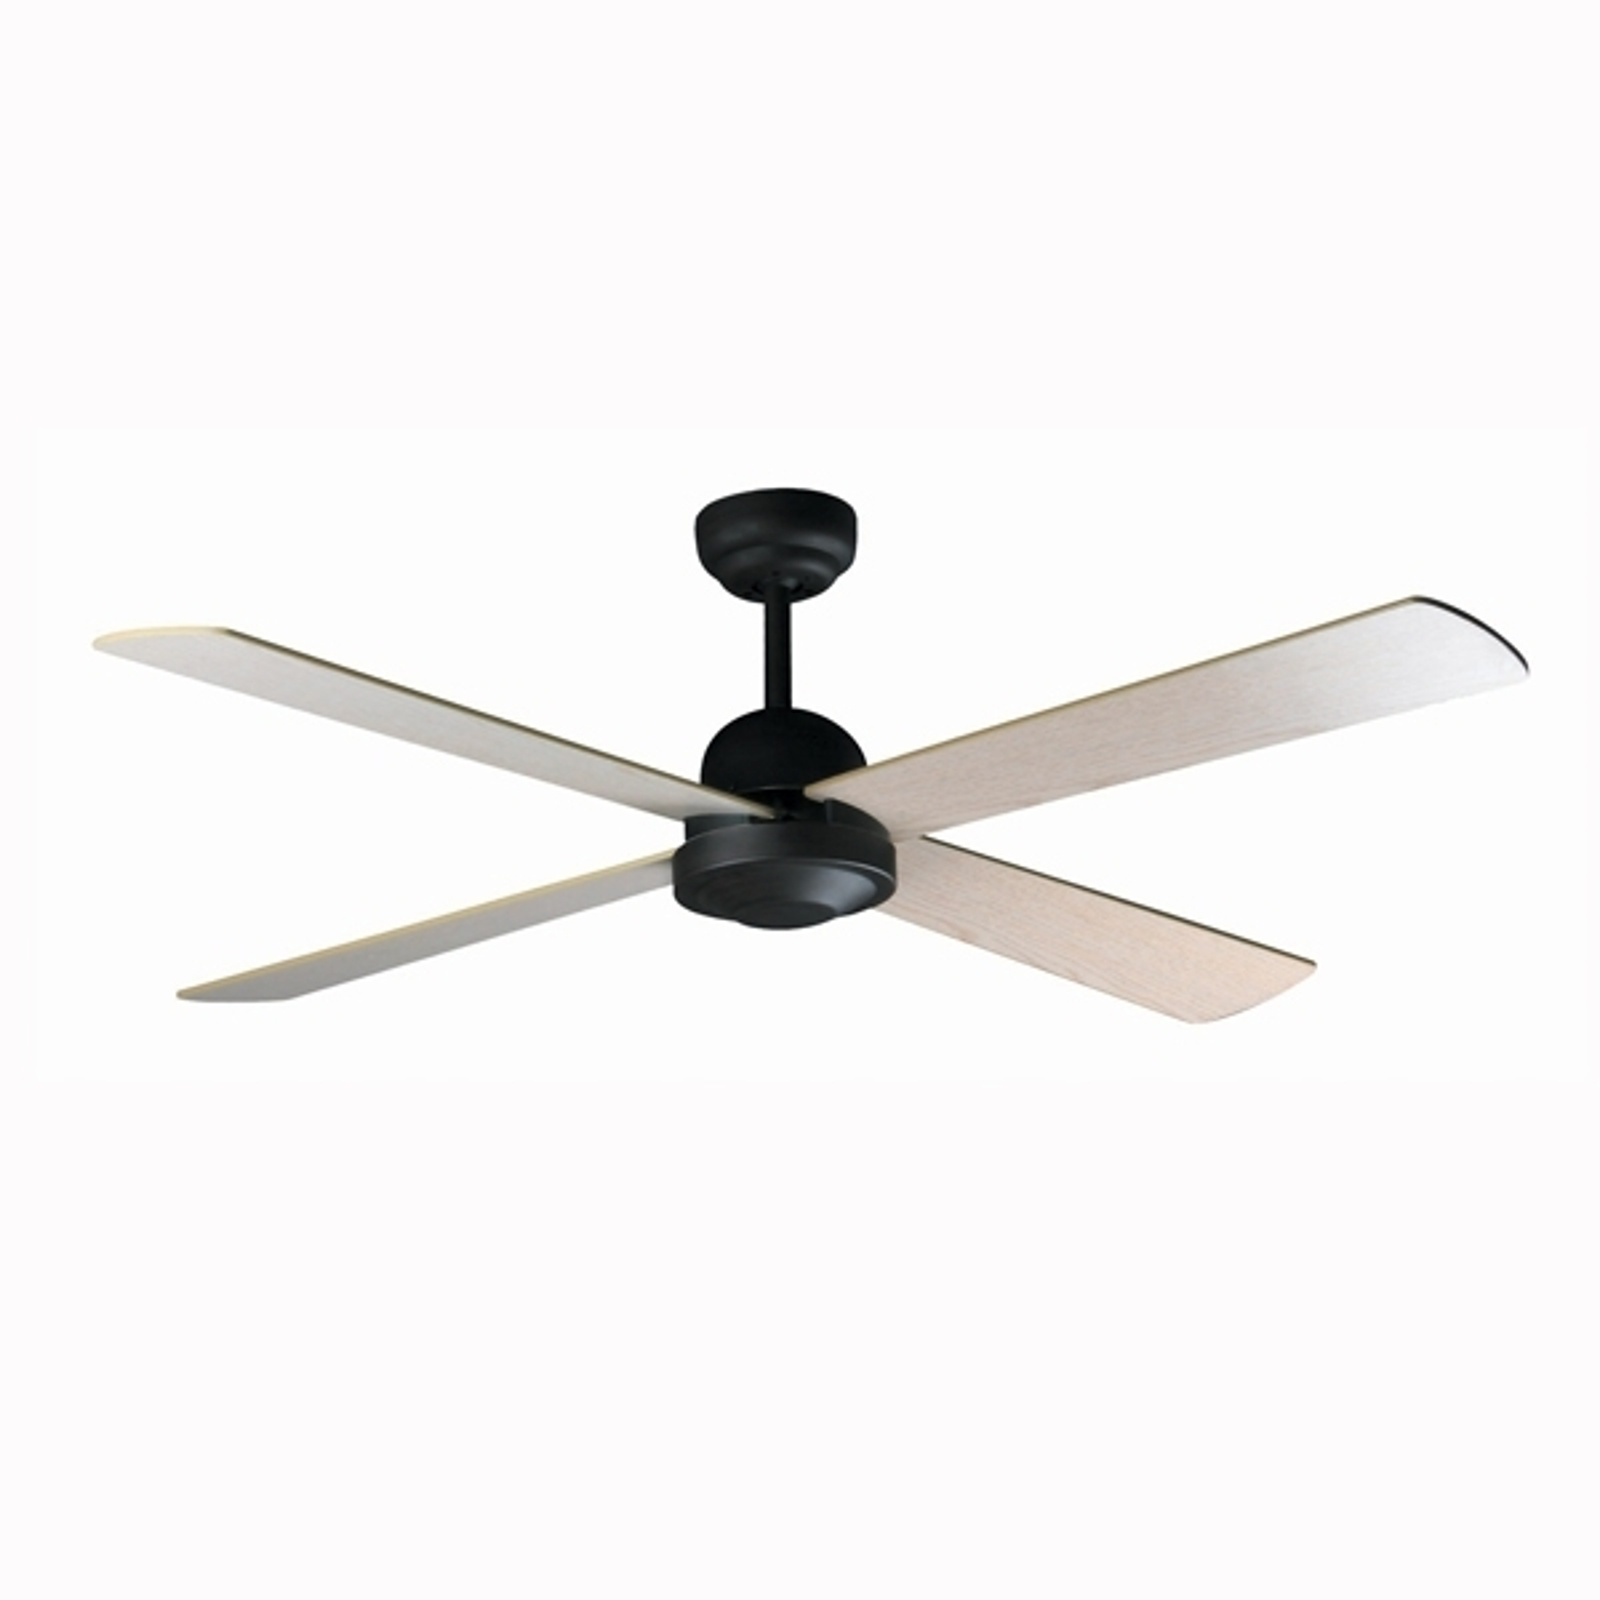 Acquista Ventilatore trendy IBIZA marrone con telecomando